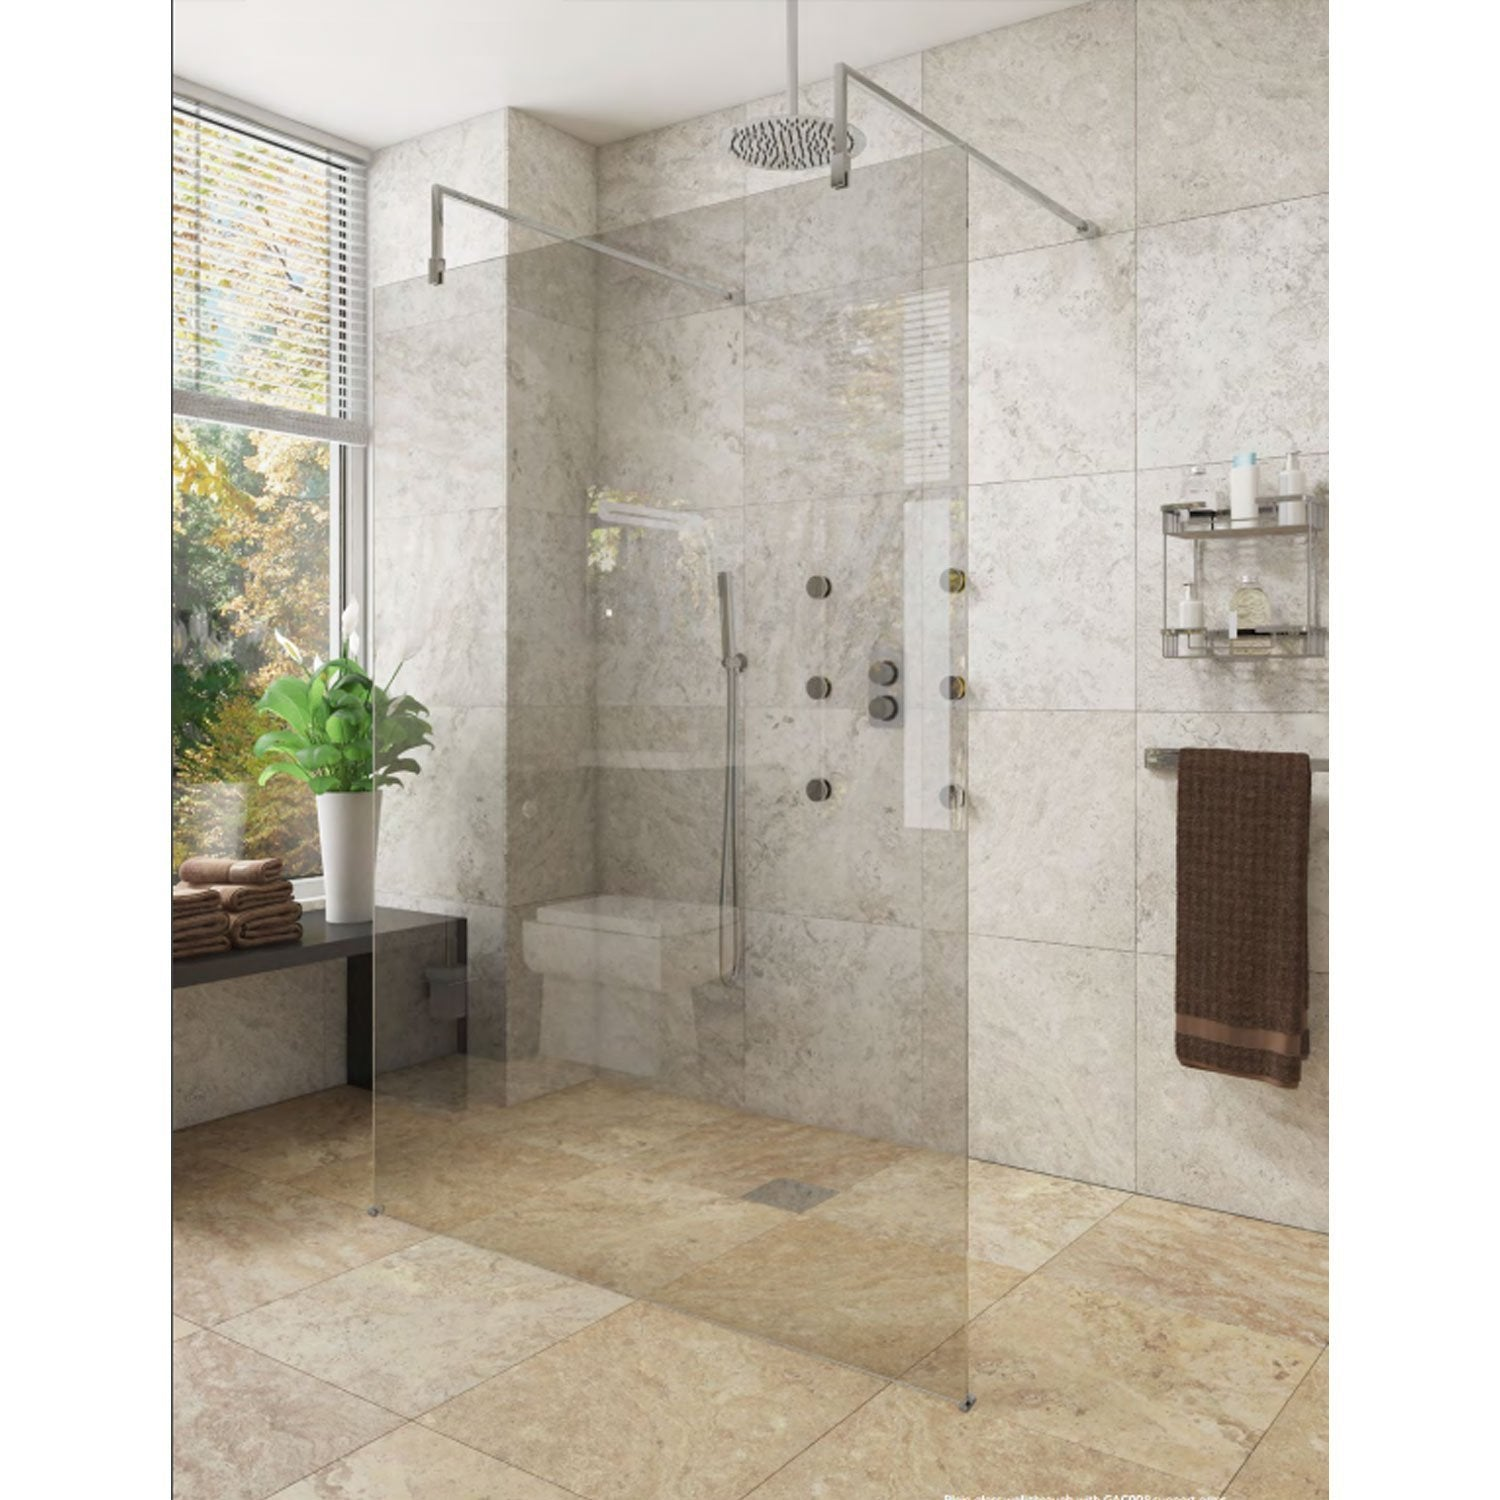 Cassellie Lana Wet Room Screen 2000mm High x 1400mm Wide - 10mm Glass Only